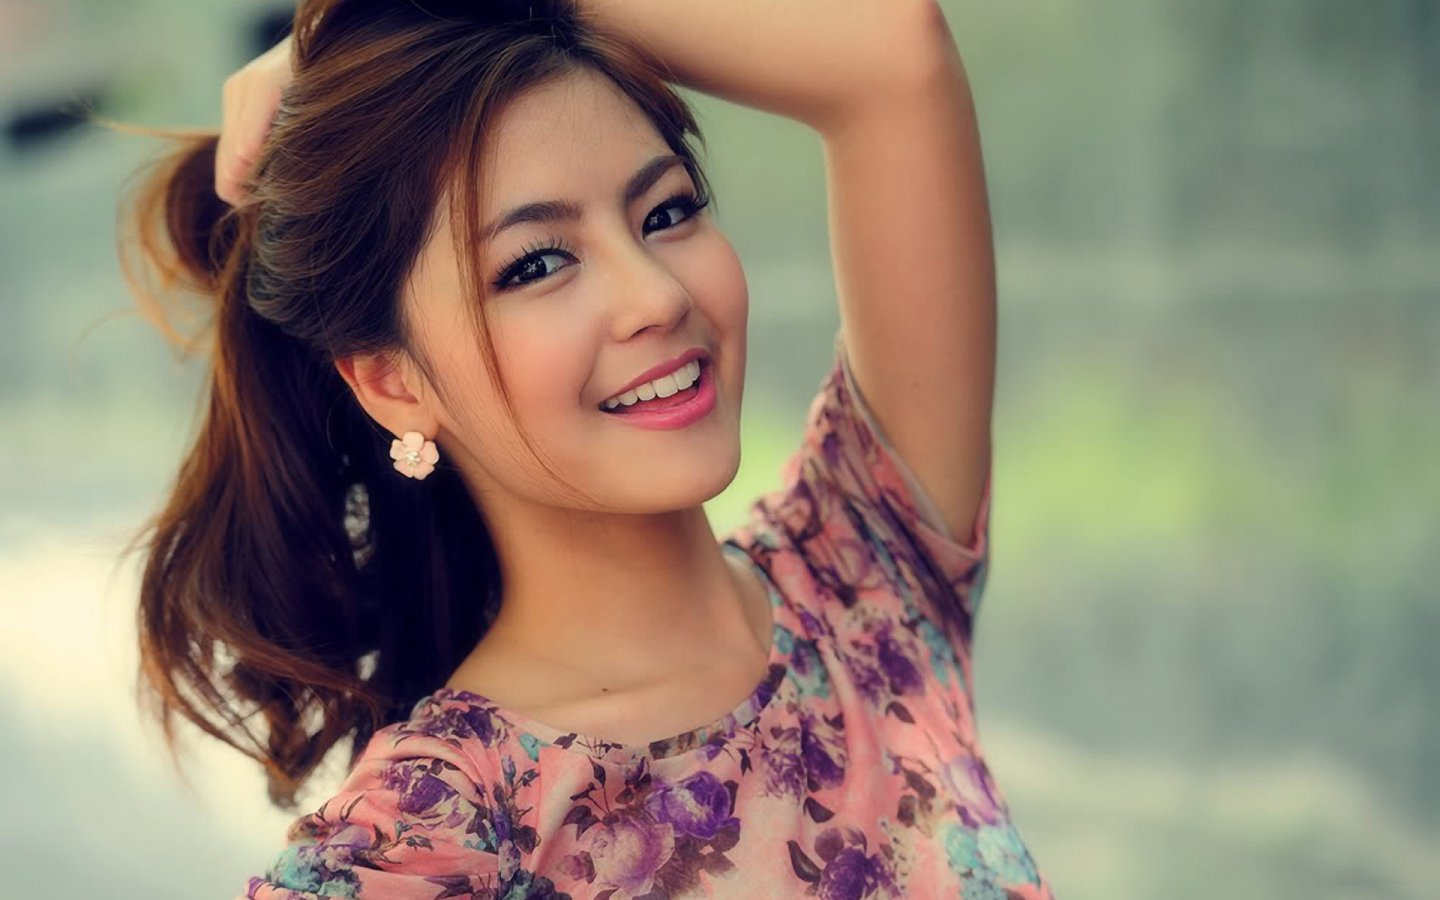 Chinese Beautiful Girl Wallpaper